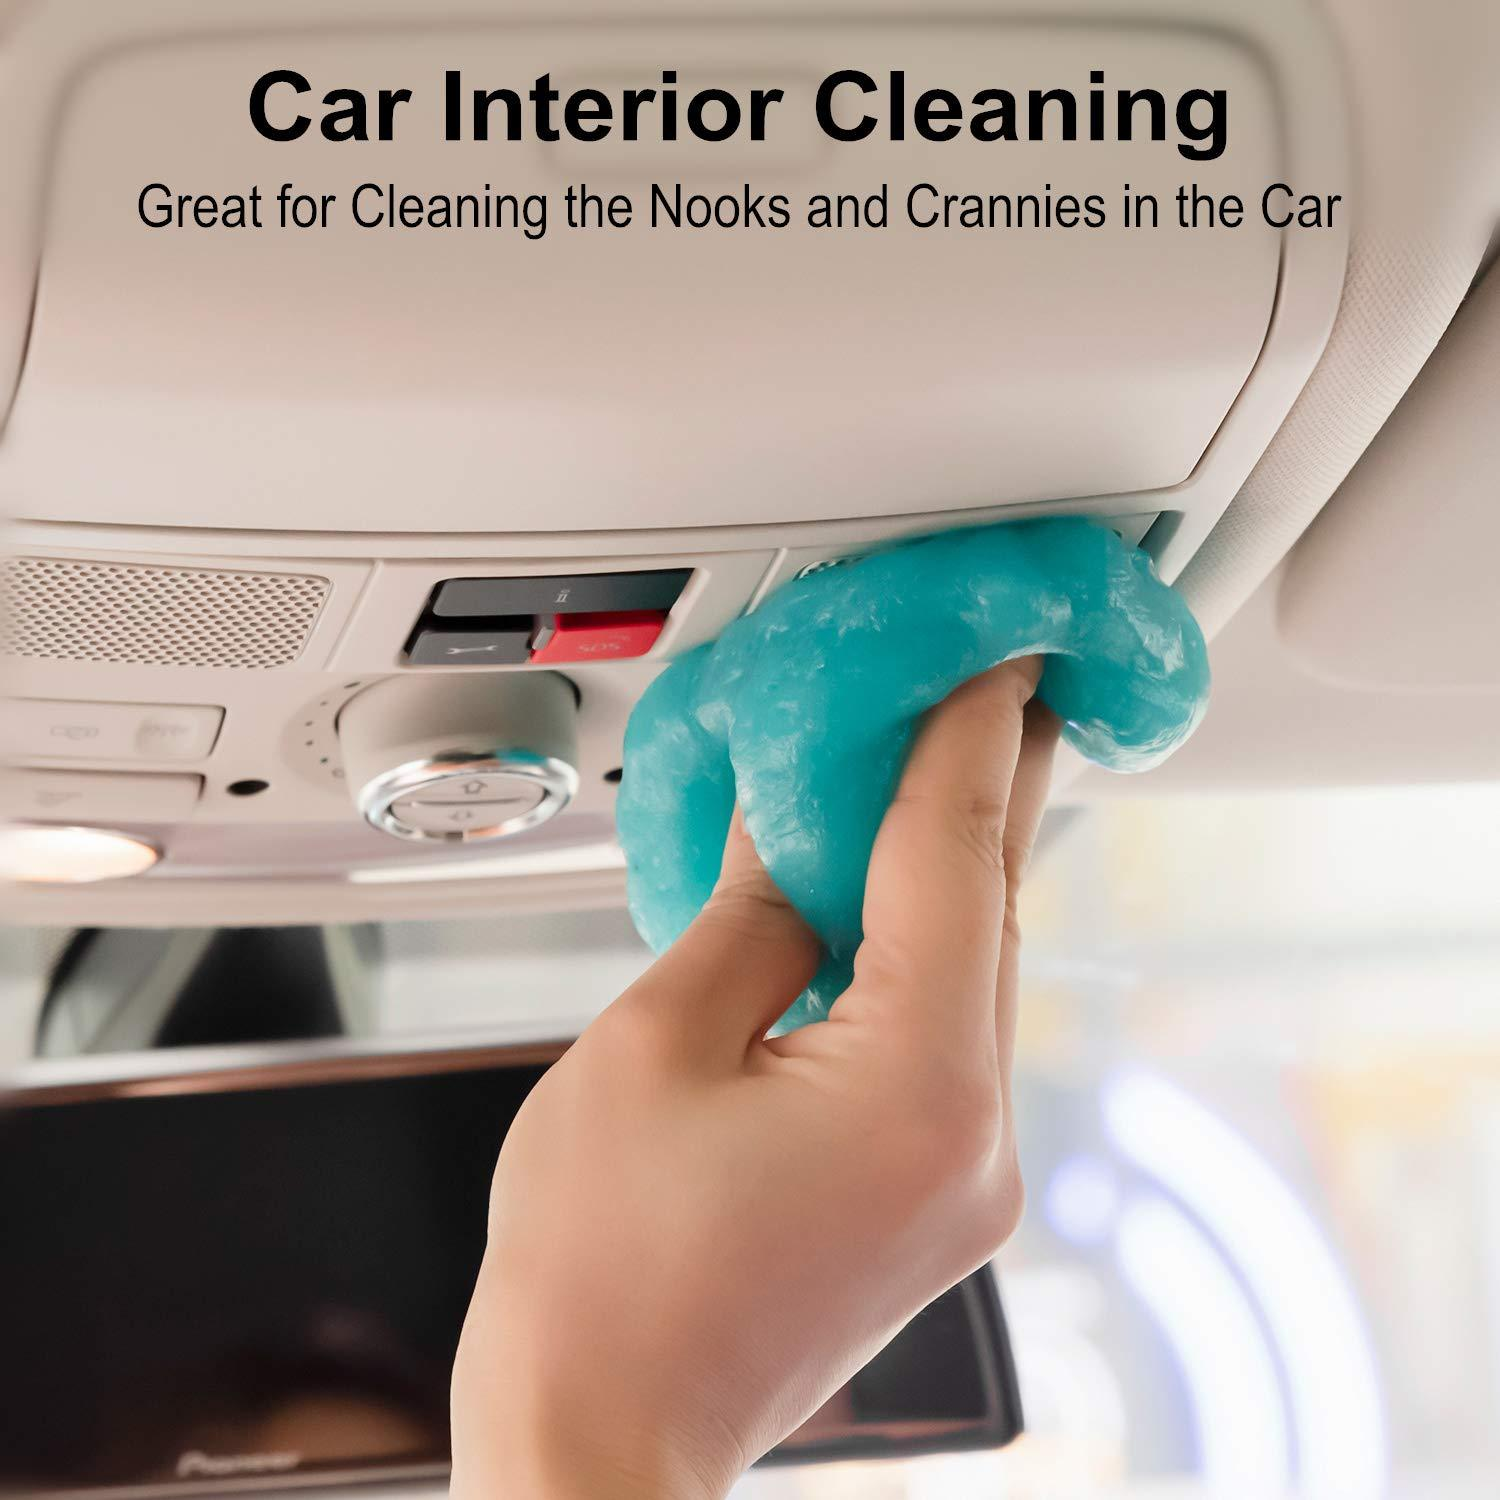 GeeRic Cleaning Gel for Car 2 Pack Keyboard Clean Mud Laptop Detailing Putty Auto Cleaning Detailing Gel Tools Car Interior Cleaner Universal Dust Removal Gel Vent Cleaner